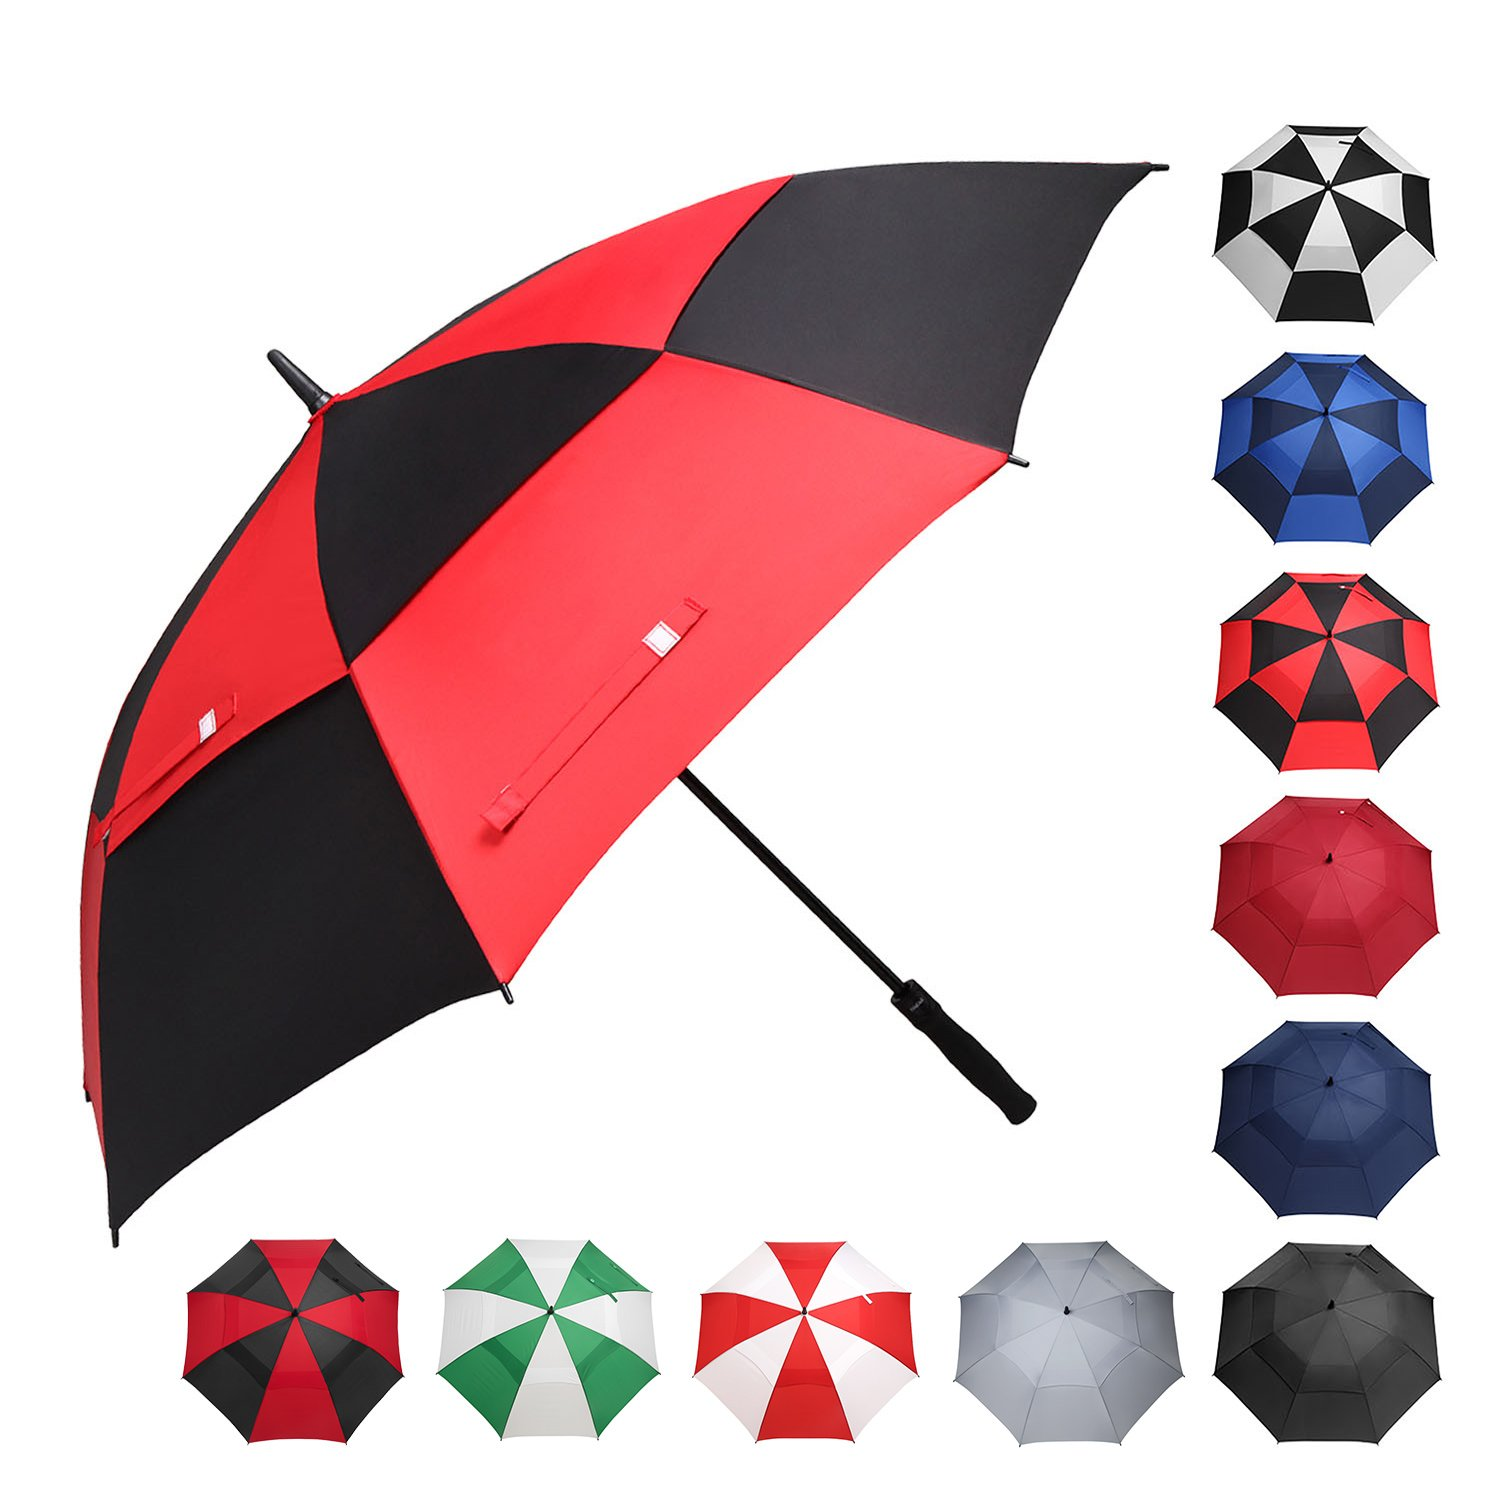 BAGAIL Golf Umbrella 68/62/58 Inch Large Oversize Double Canopy Vented Windproof Waterproof Automatic Open Stick Umbrellas for Men and Women (Black Red, 62 inch) by BAGAIL